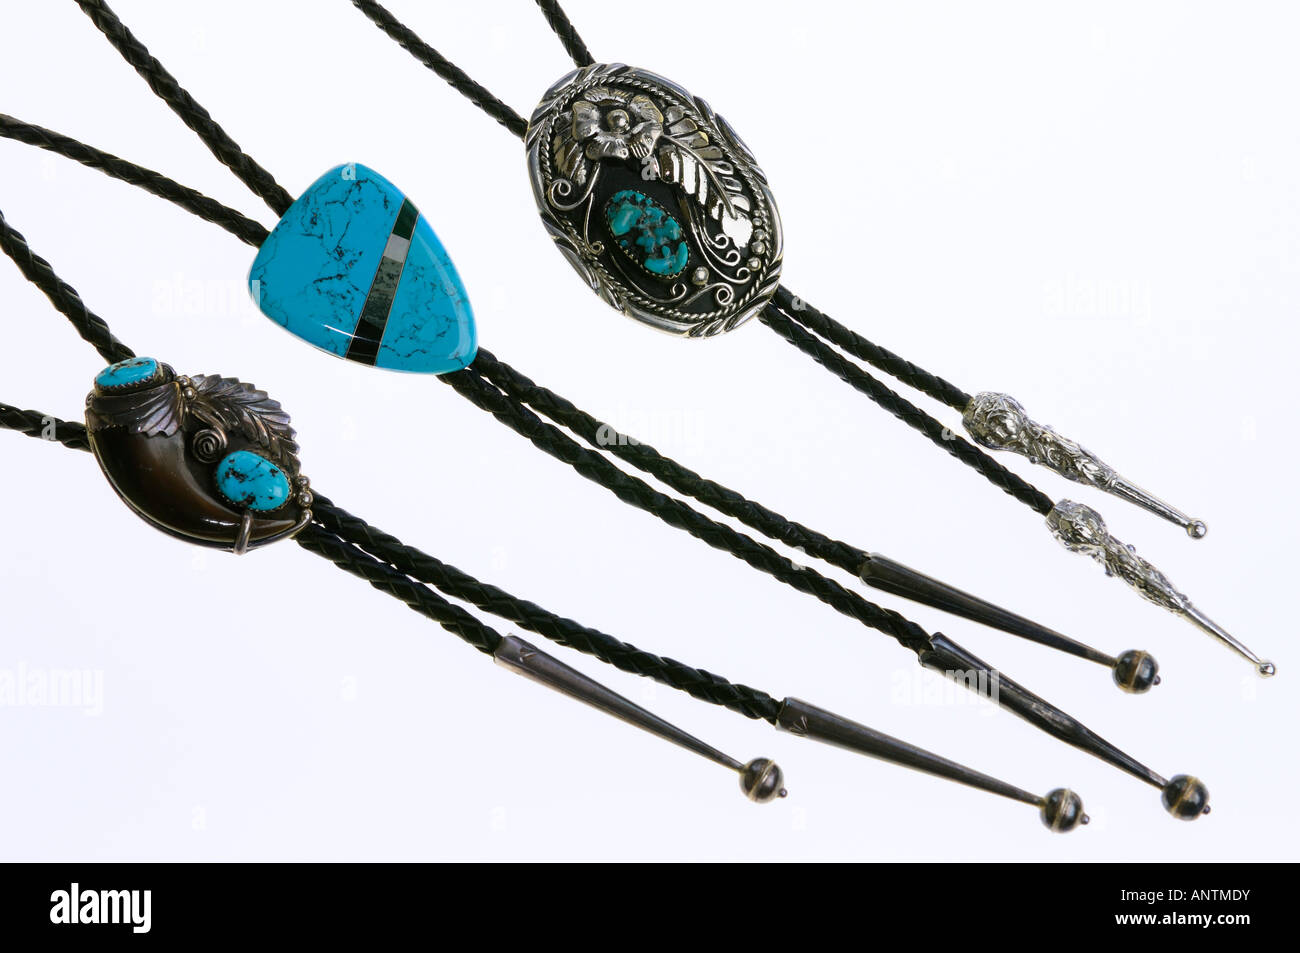 Three bolo ties with turquoise stone inlay on white background - Stock Image